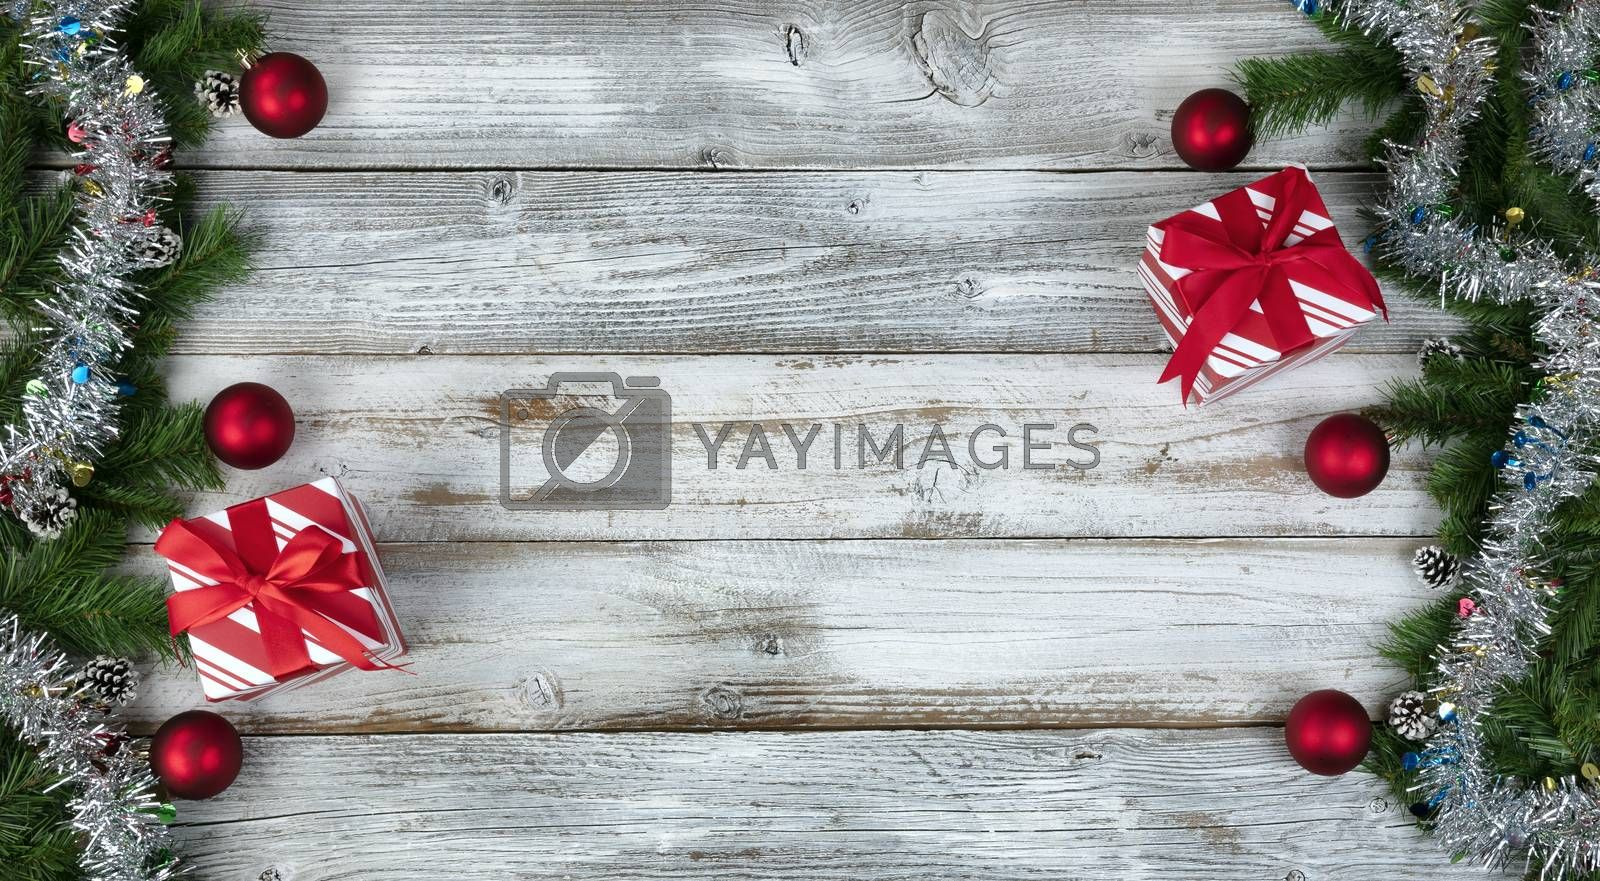 Winter holidays concept background for Christmas or New Year